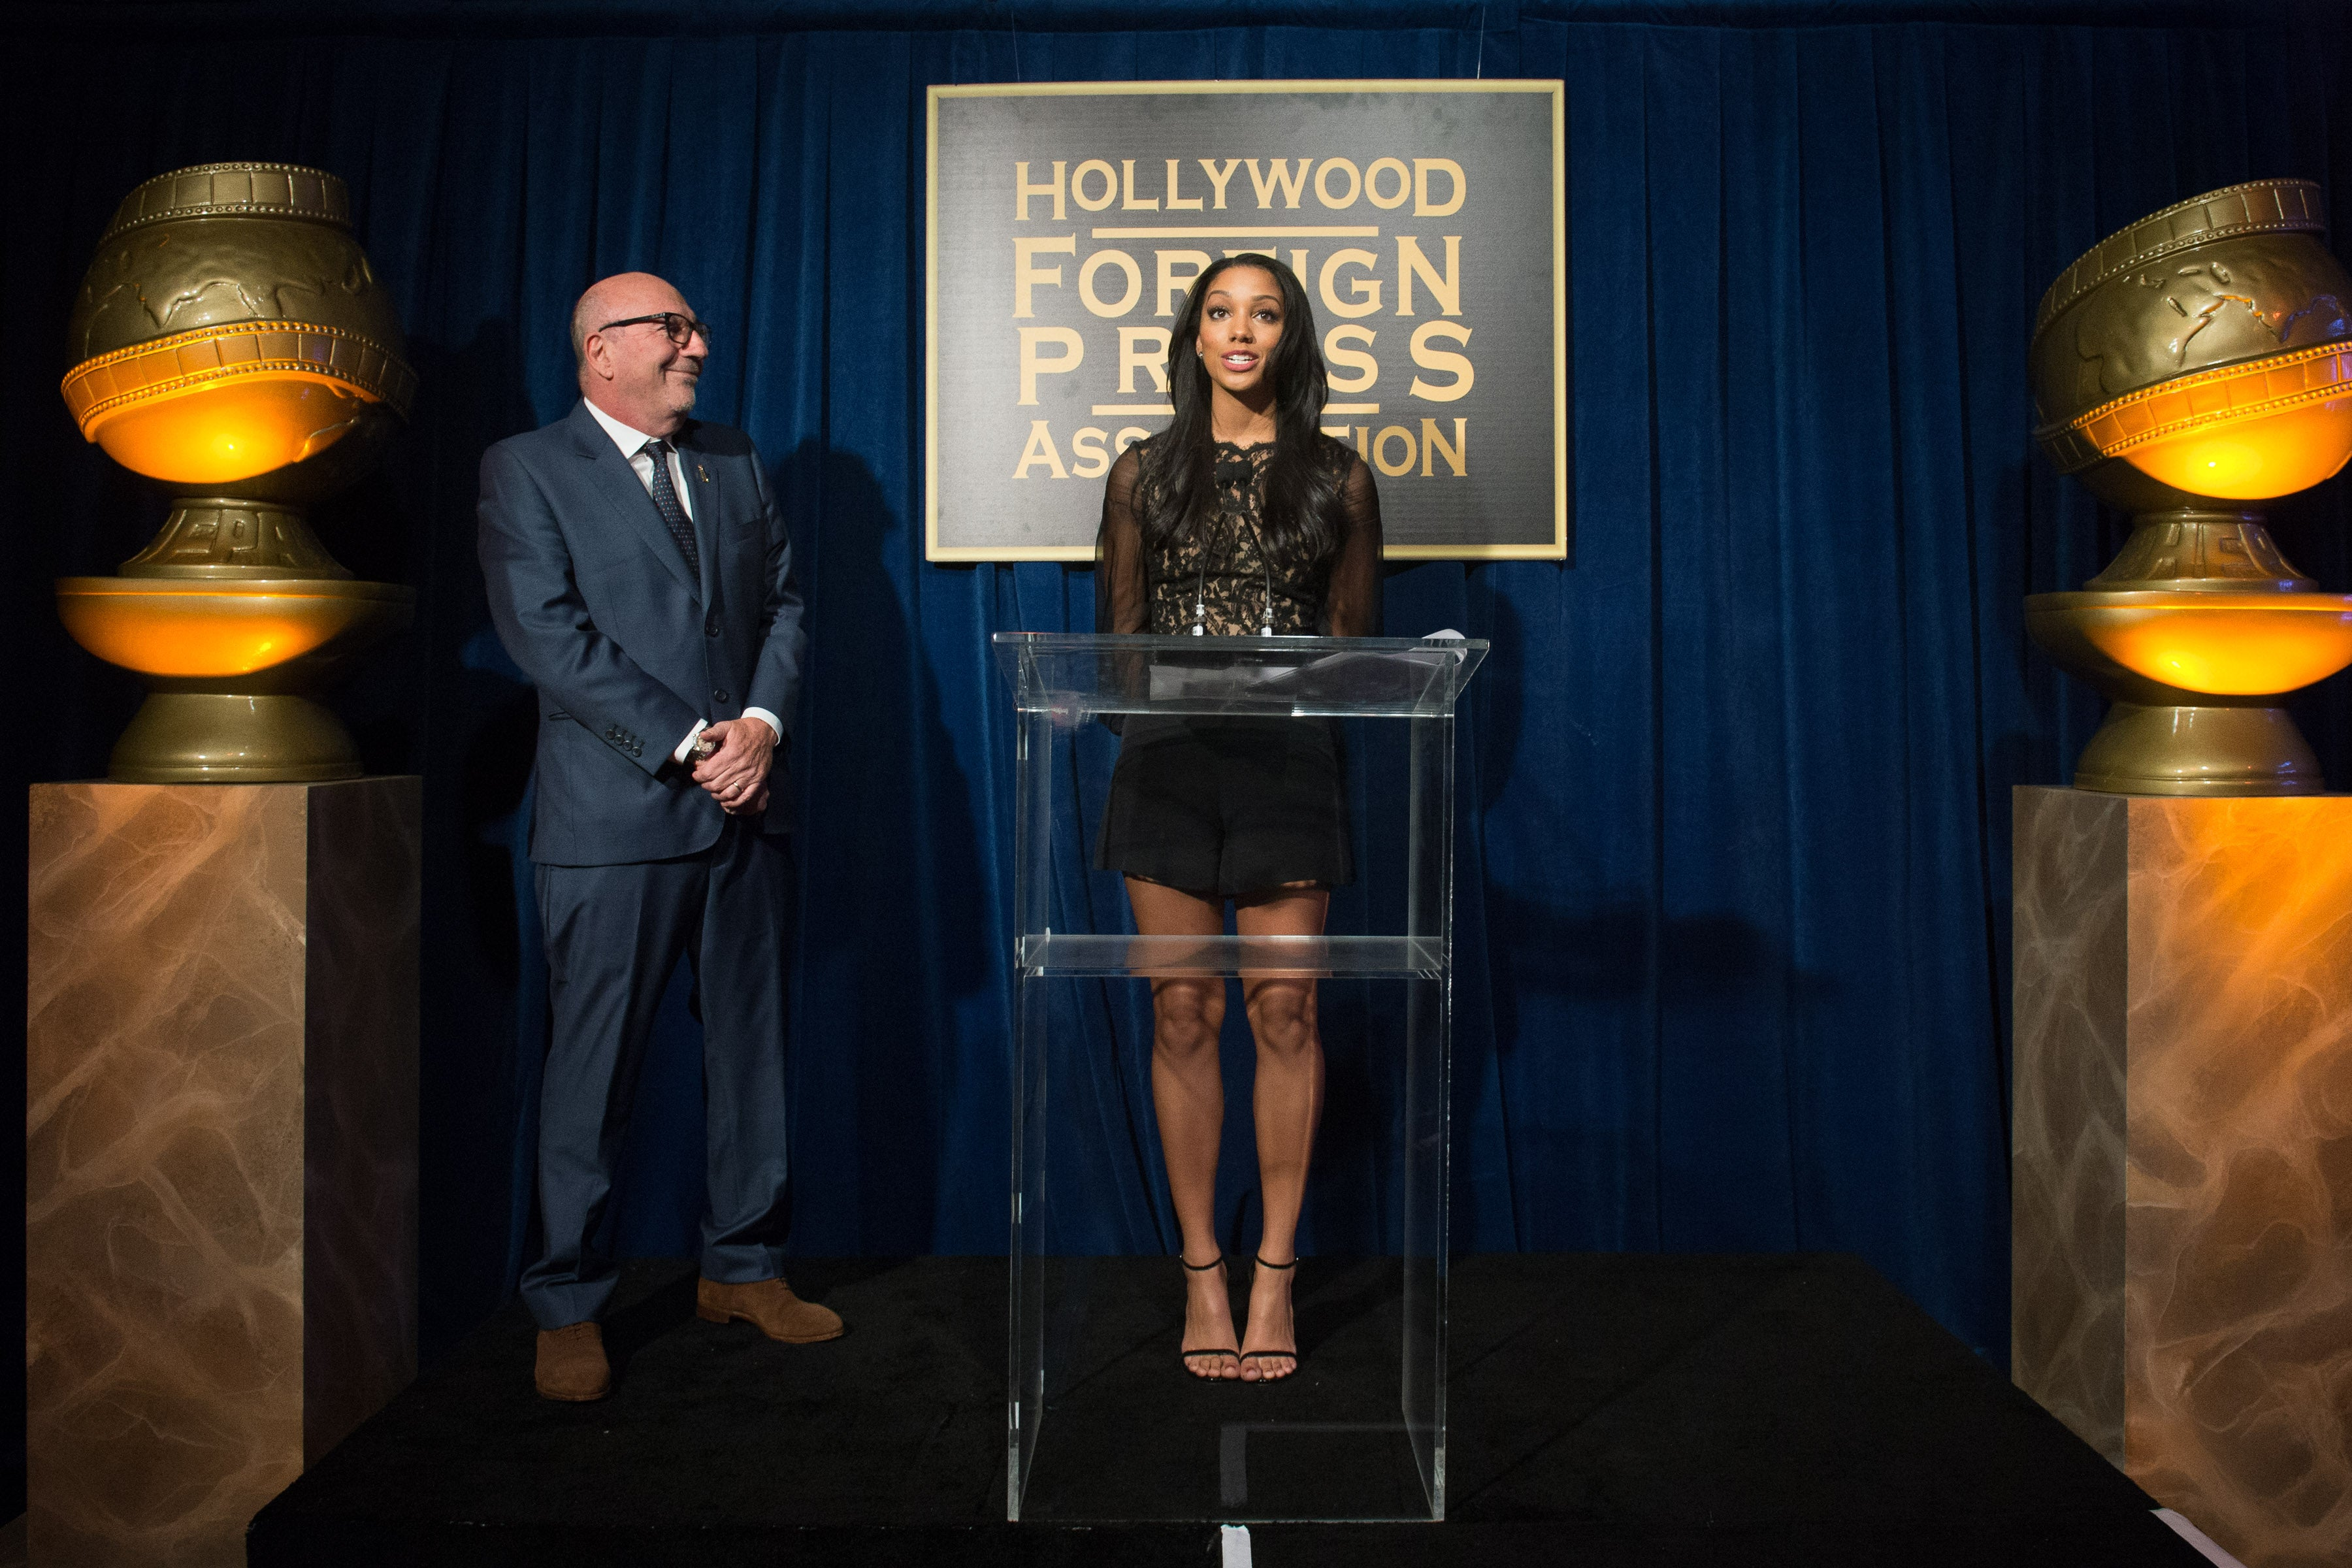 Corinne Fox, Miss Golden Globe 2016 and HFPA President Lorenzo Soria